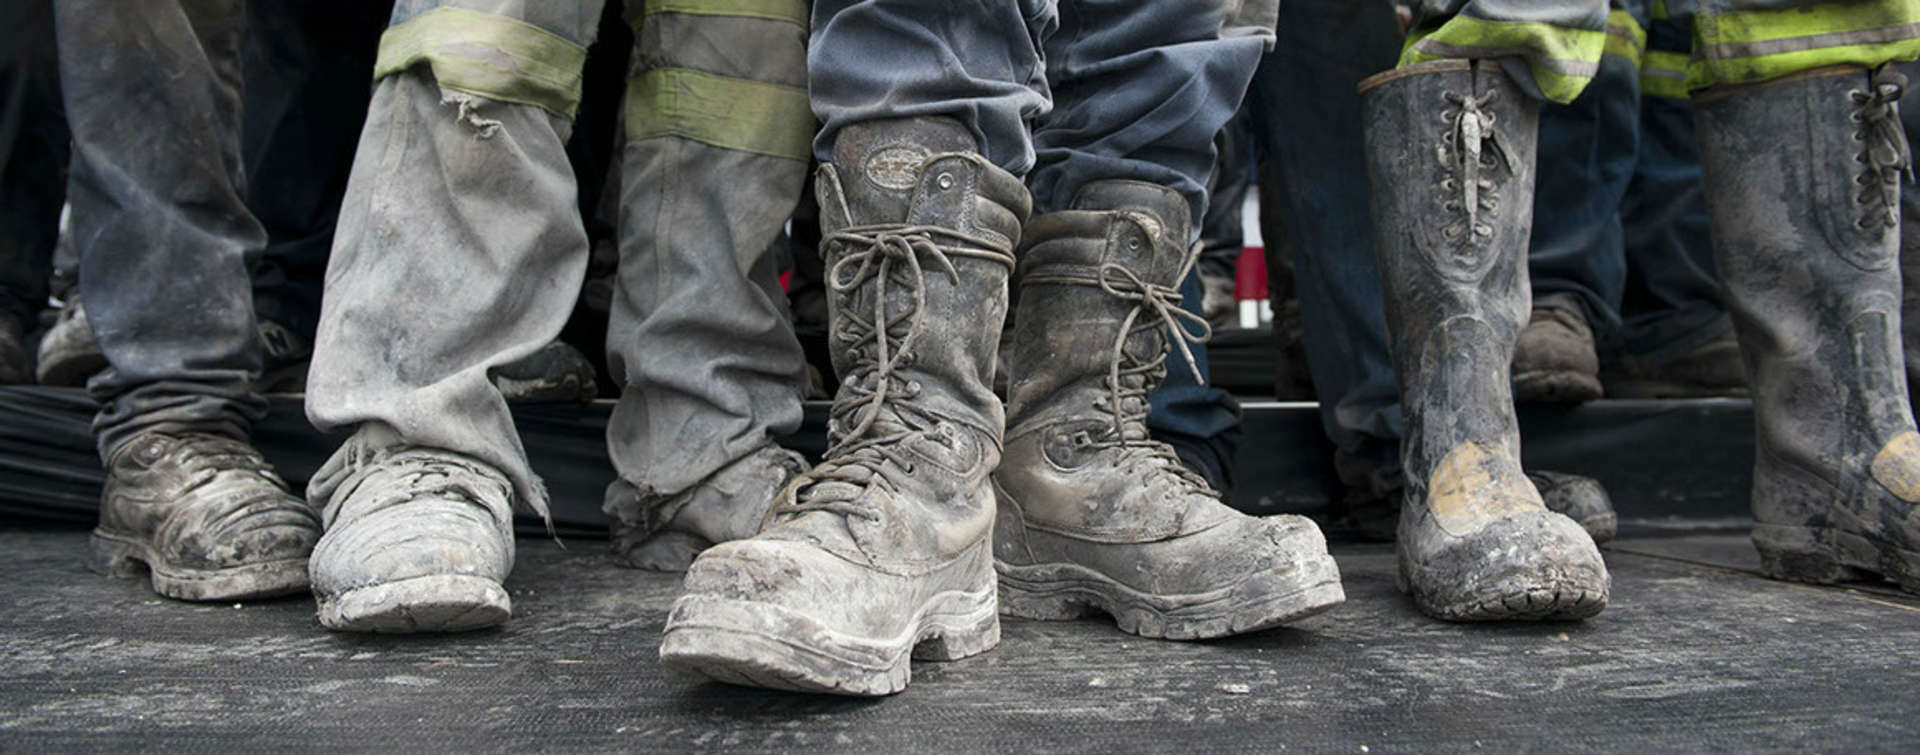 photo of construction workers feet in muddy boots